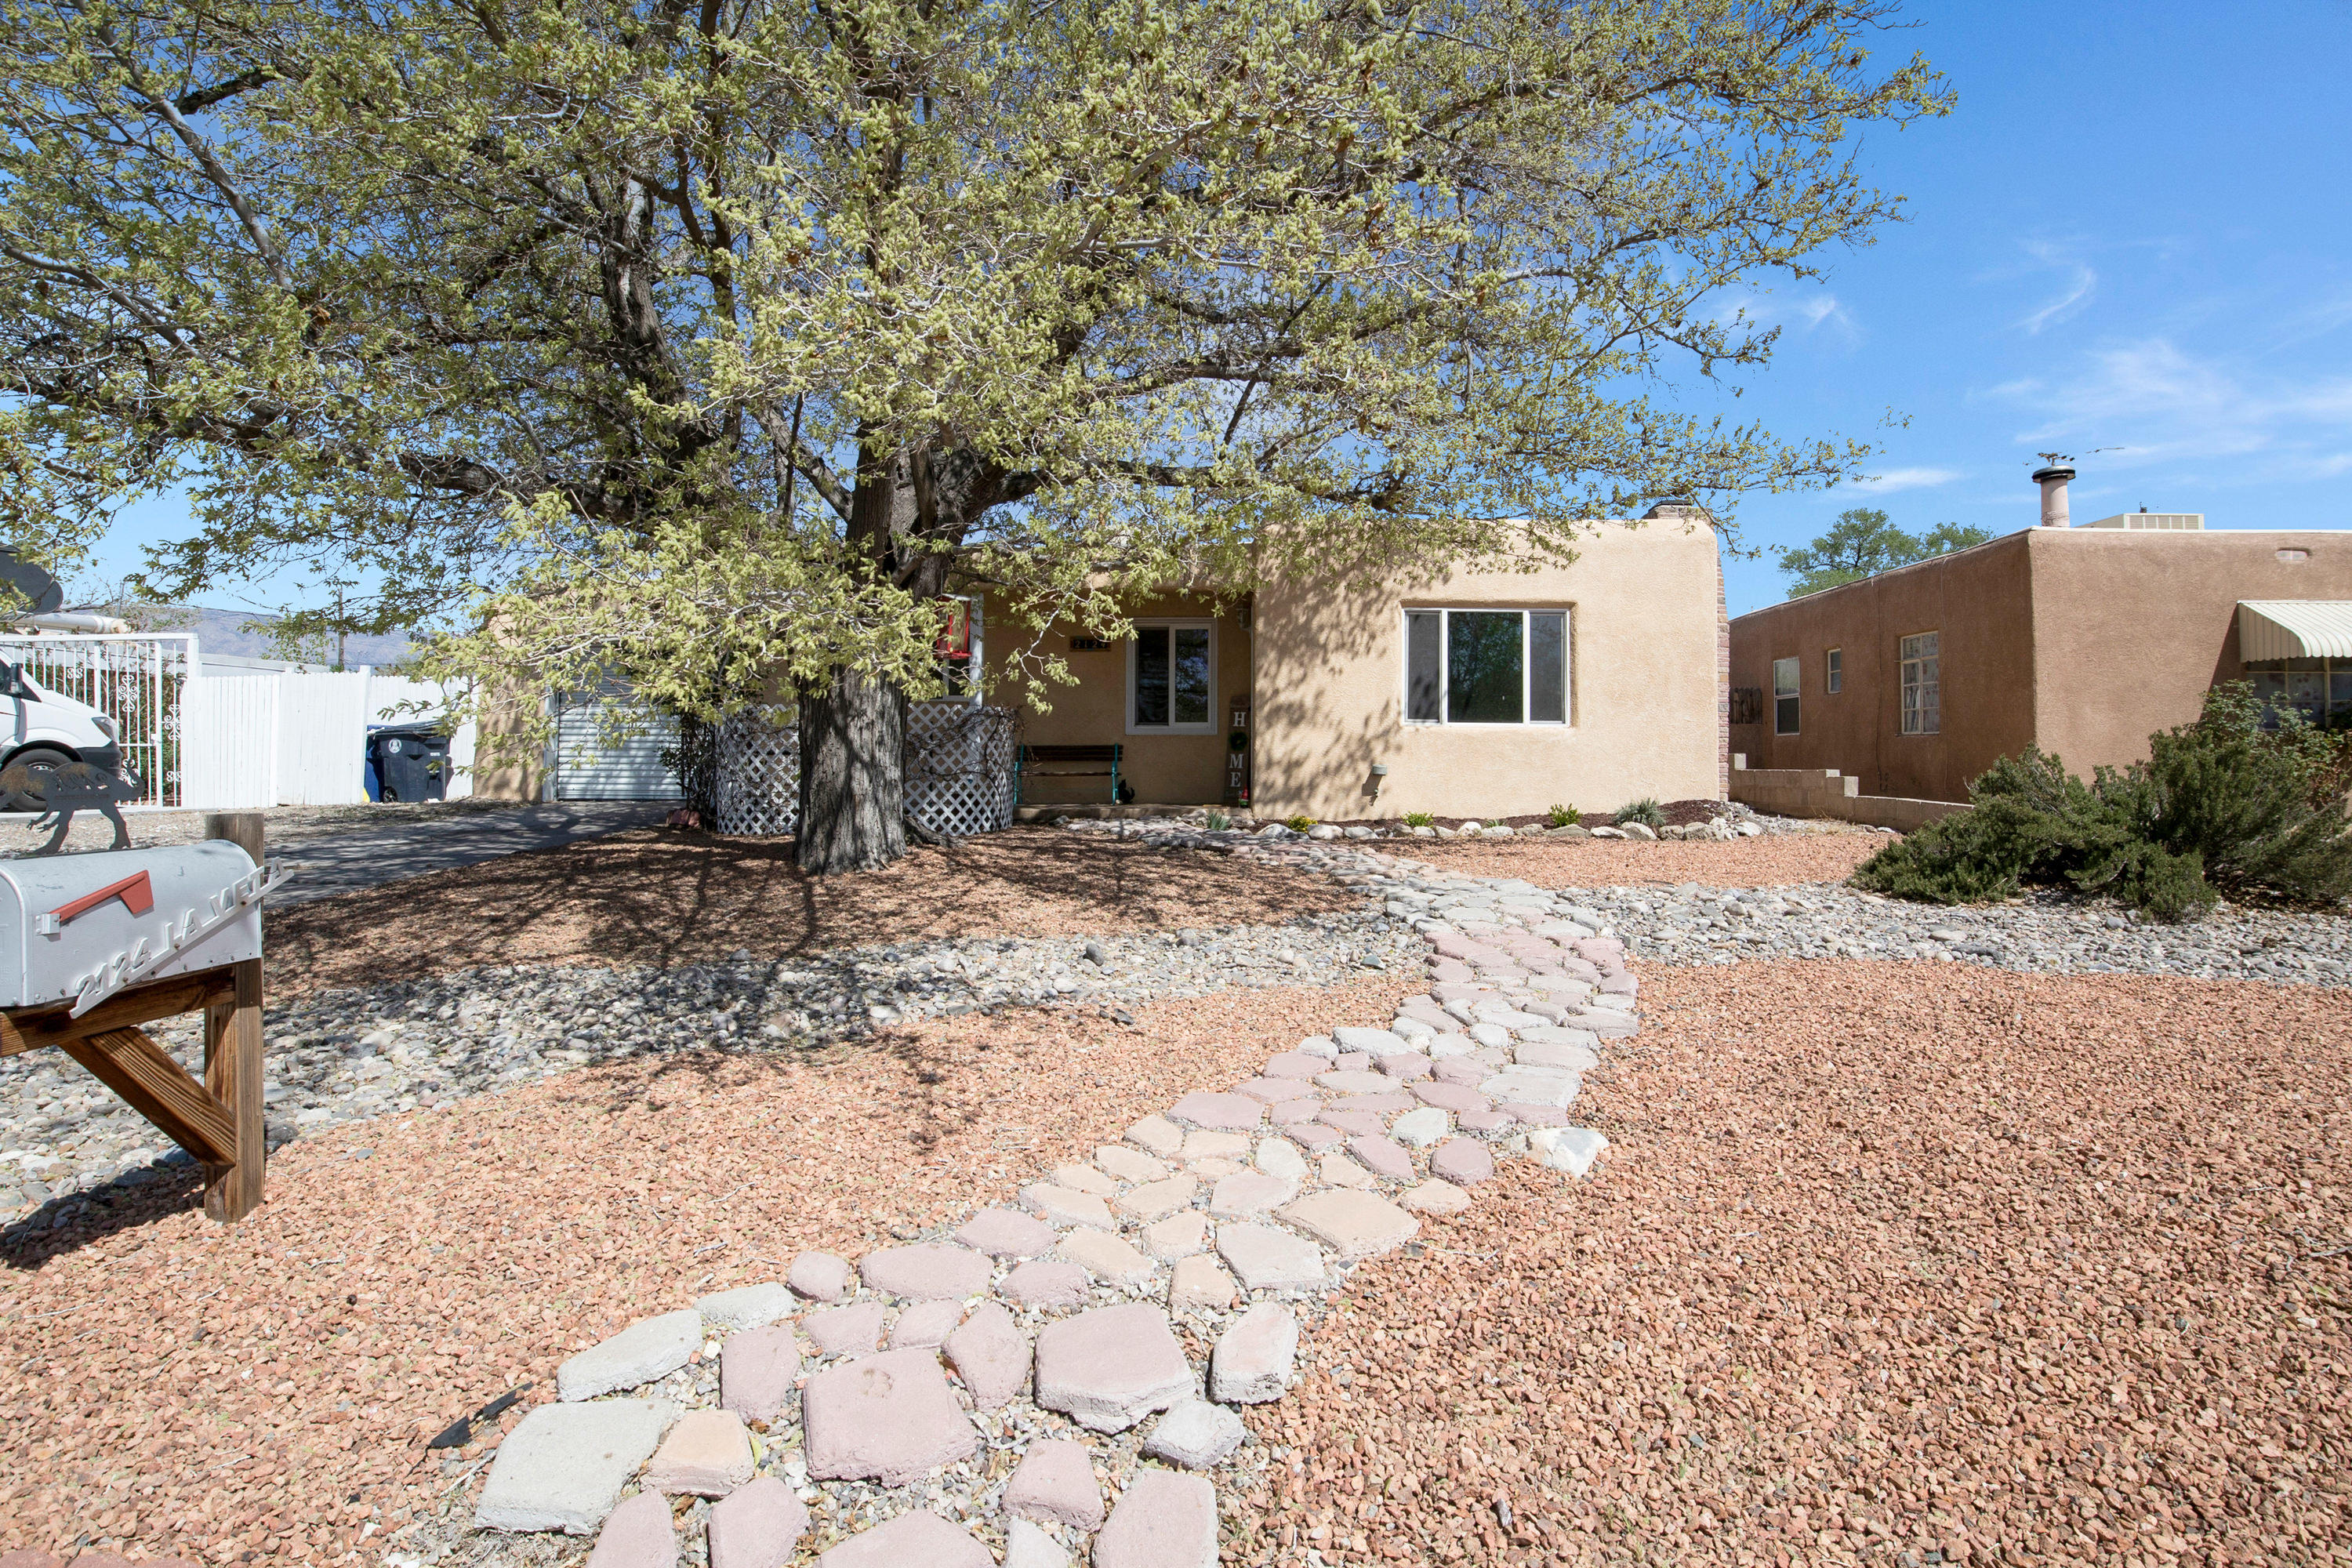 *Offer Deadline: Sunday, April 18th at 2pm*This home is adorable! Get ready to be smitten. From the moment you pull up, you're greeted by an old growth tree and a low-maintenance, xeriscaped front yard with gorgeous shrubbery. As you walk in, you'll feel immediately at home in your cozy living room with a wood-burning fireplace. The galley-style kitchen features fun custom tile designed countertops. Two well-appointed bedrooms share a nicely updated full bathroom. The garage conversion provides extra space for a proper den, workshop, or maybe an in-home gym! Being so centrally located to all that Albuquerque has to offer is such a treat. Within minutes, you can be in any part of the city - just catch I-40 in either direction, and off you go!